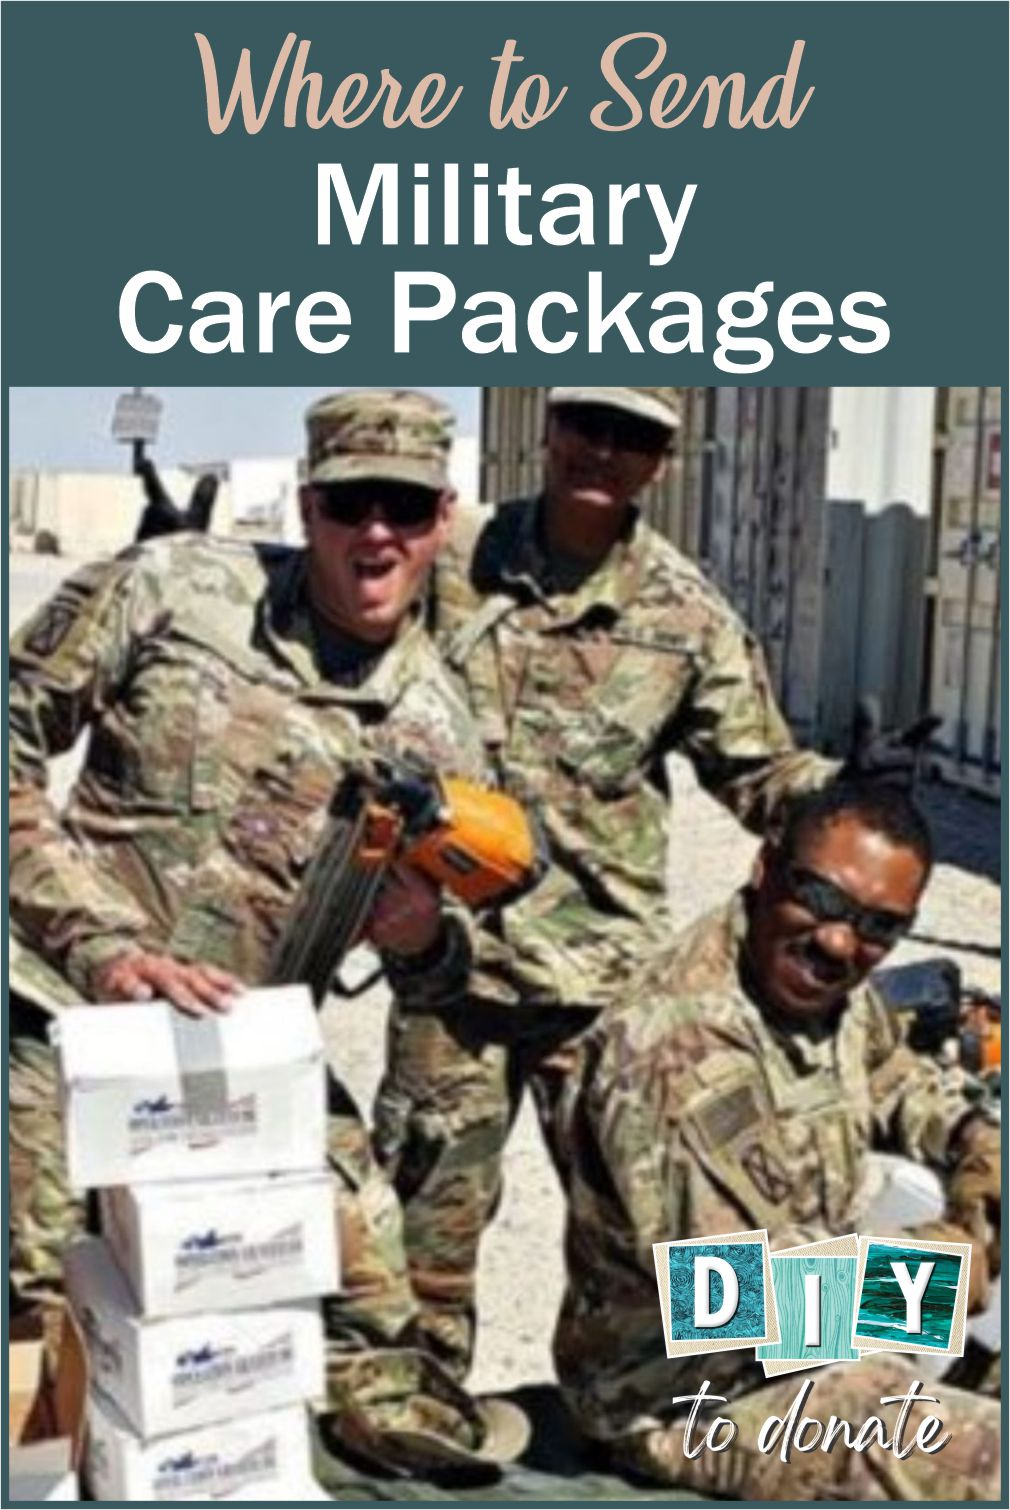 Our military men and woman make great sacrifices so we can continue to enjoy the freedom that is uniquely American. When you make and donate handmade items you are sending a message to our deployed troops that you appreciate what they do. #diytodonate #carepackages #military #militarycarepackages #heroes #miltaryheroes